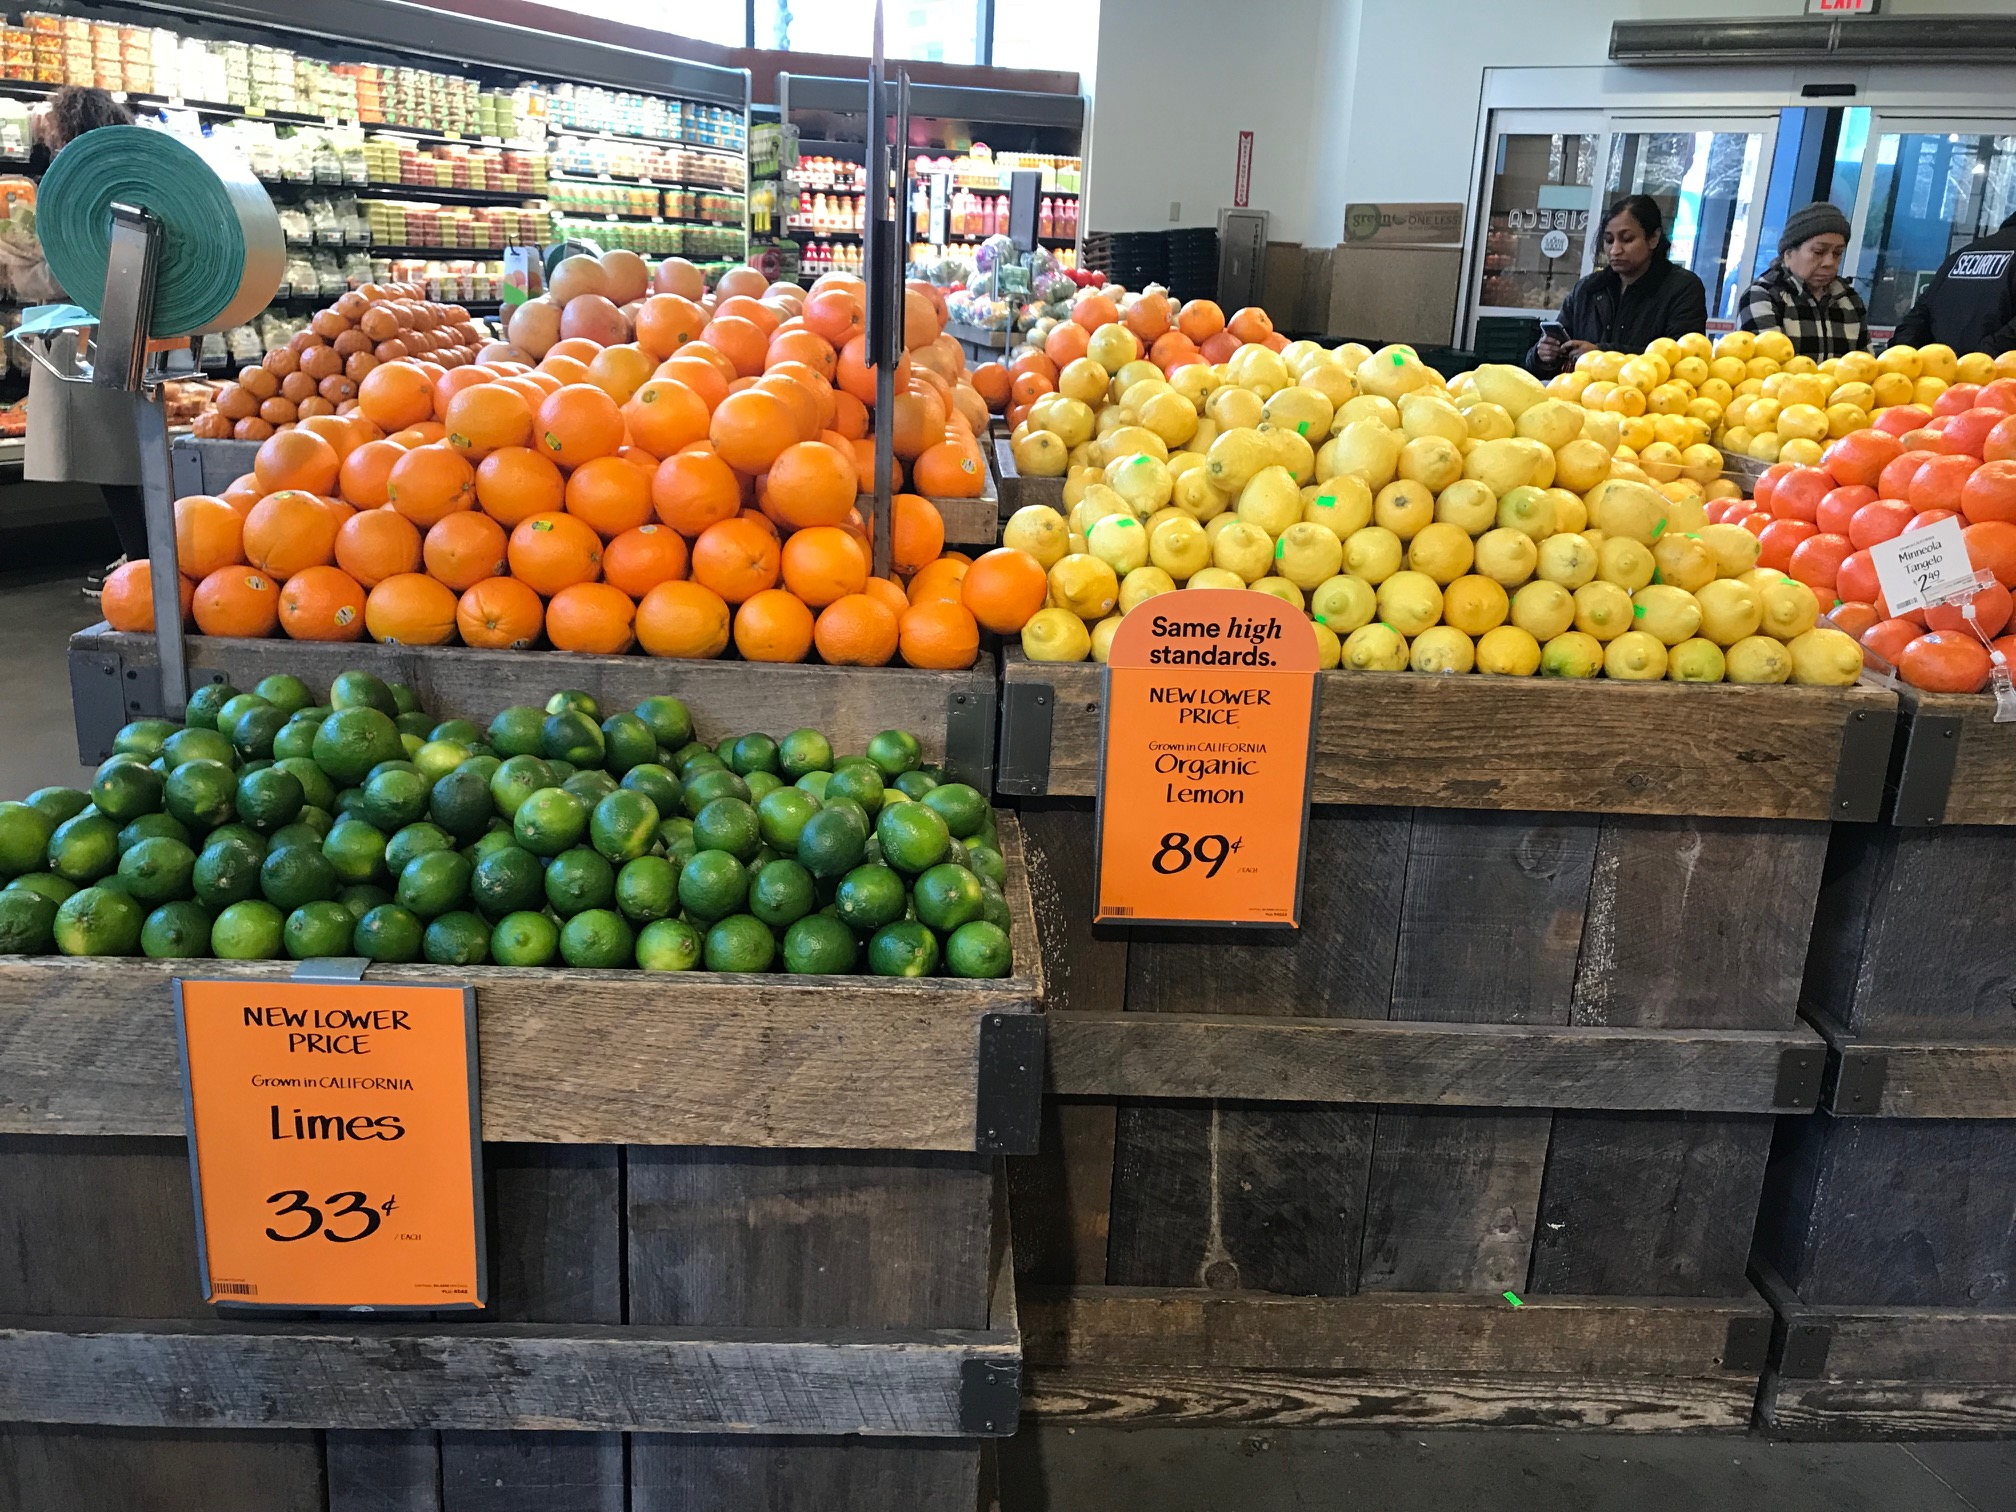 Oranges, lemons and limes are on display with discount price tags inside a Whole Foods in New York City.